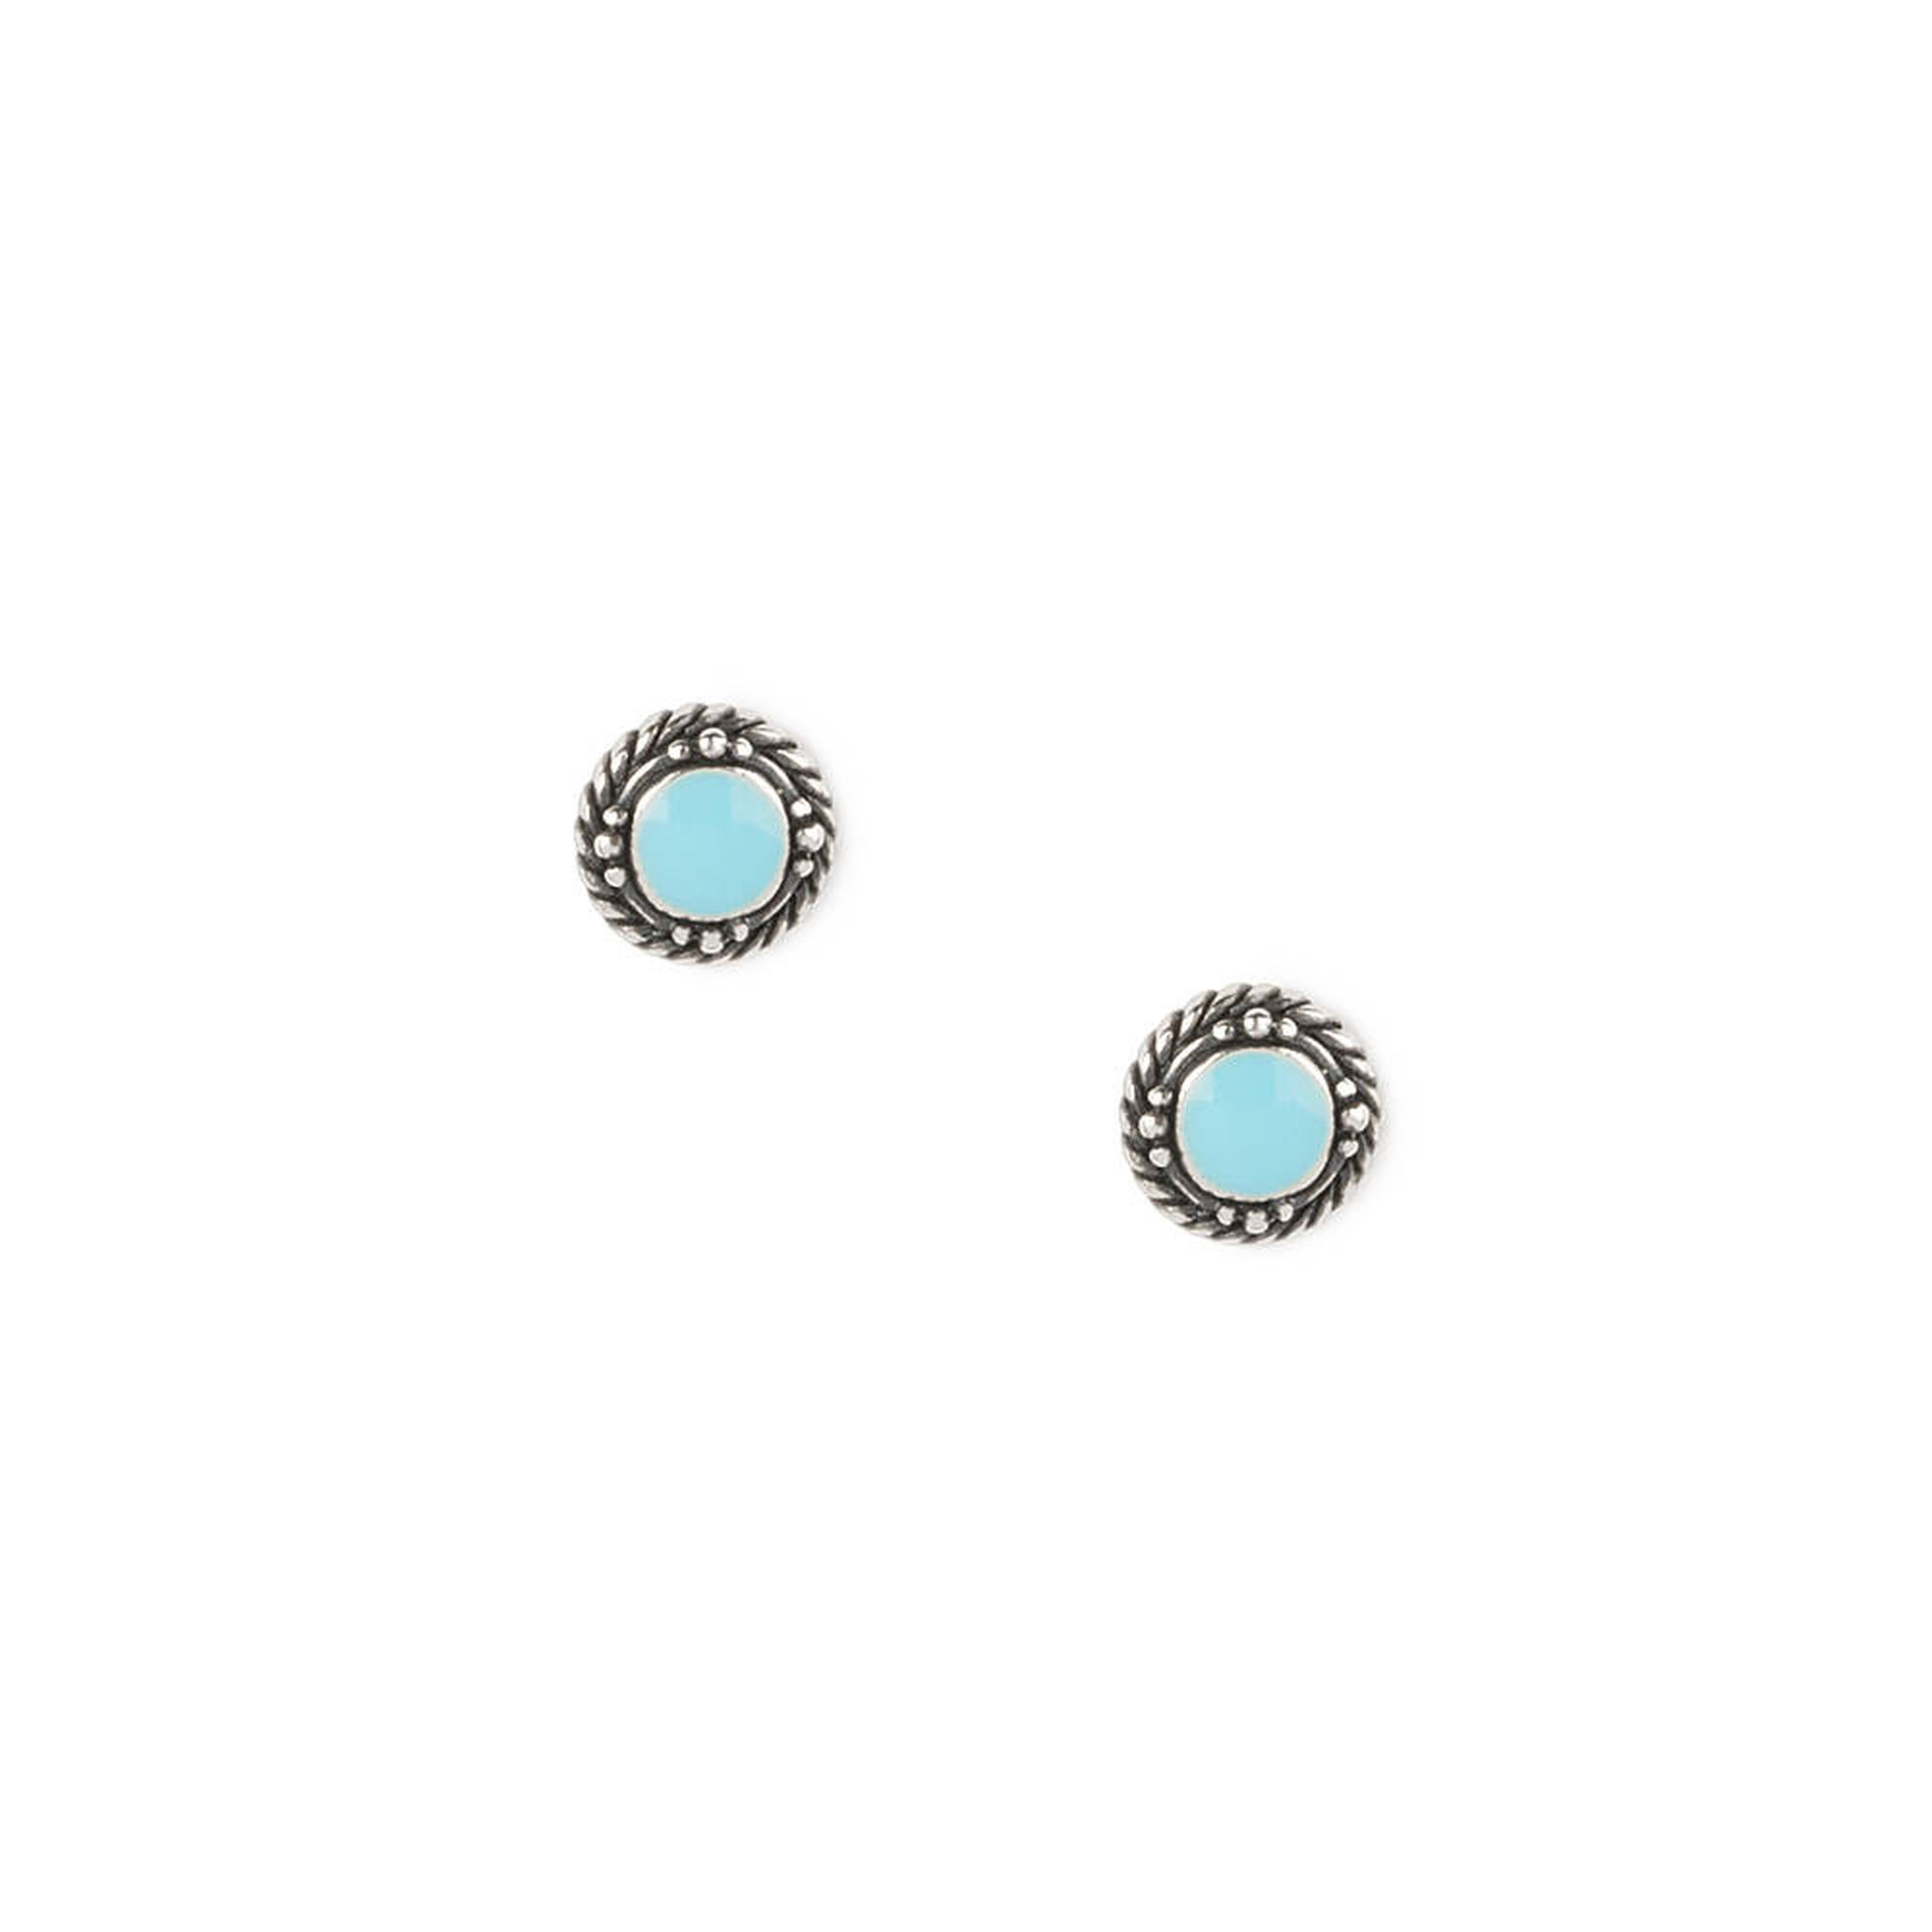 pin earrings sterling teardrop turquoise stud silver